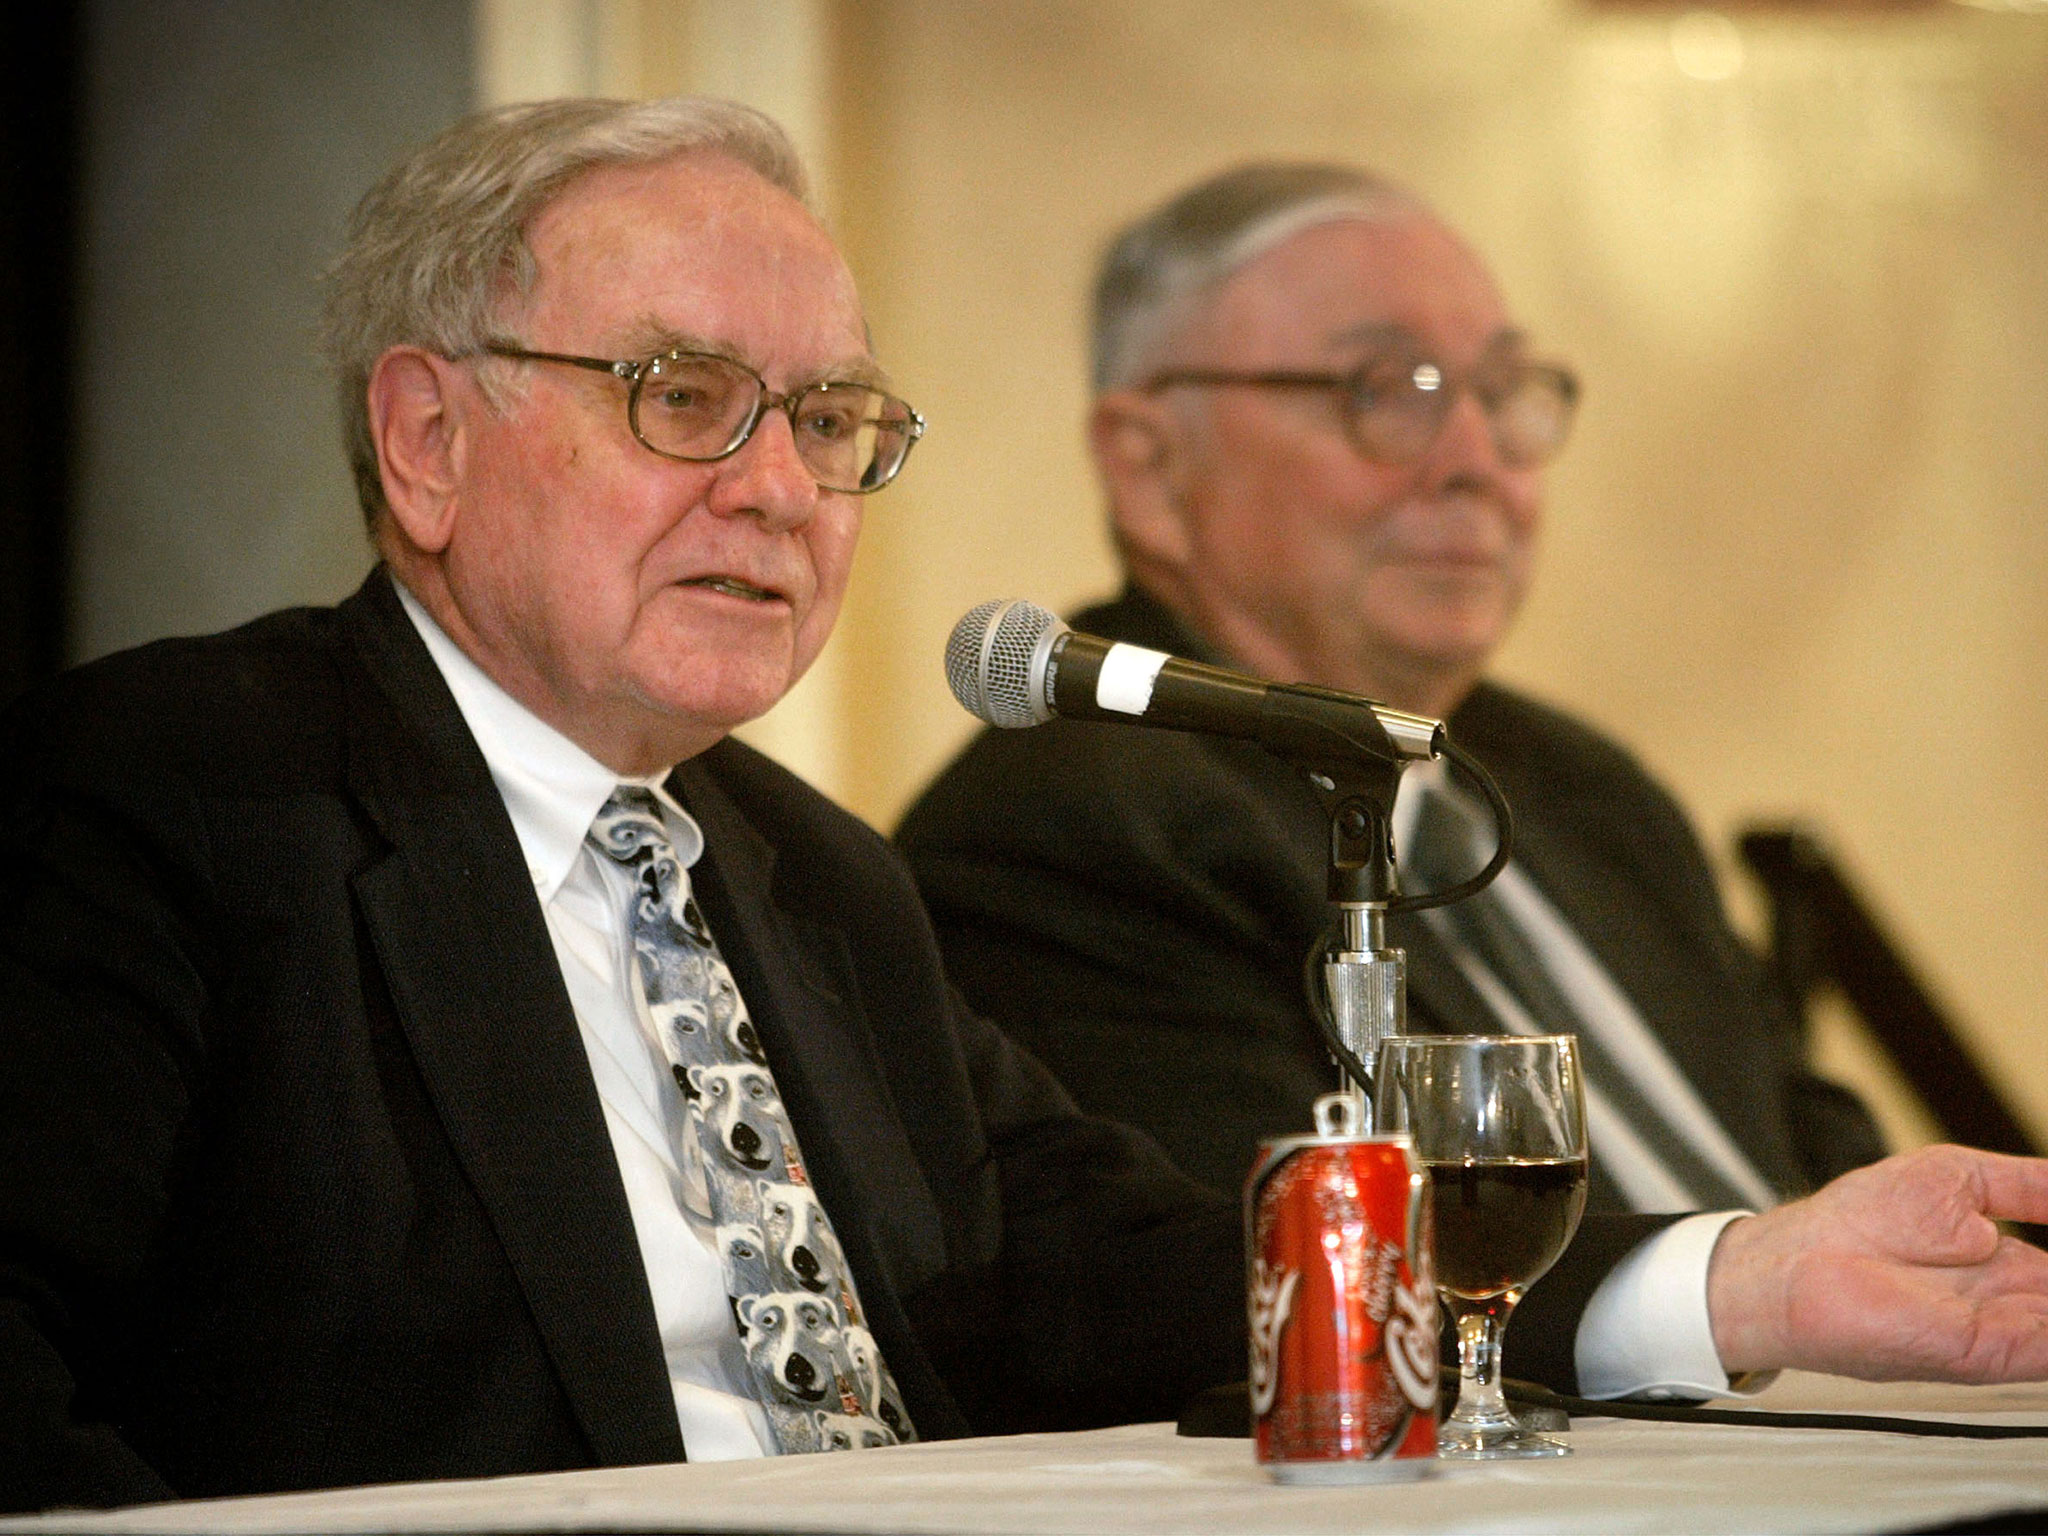 Warren Buffett's Face Will Adorn Coke Cans In China As Coca-cola Seeks To Capitalise On Investor's Fame photo